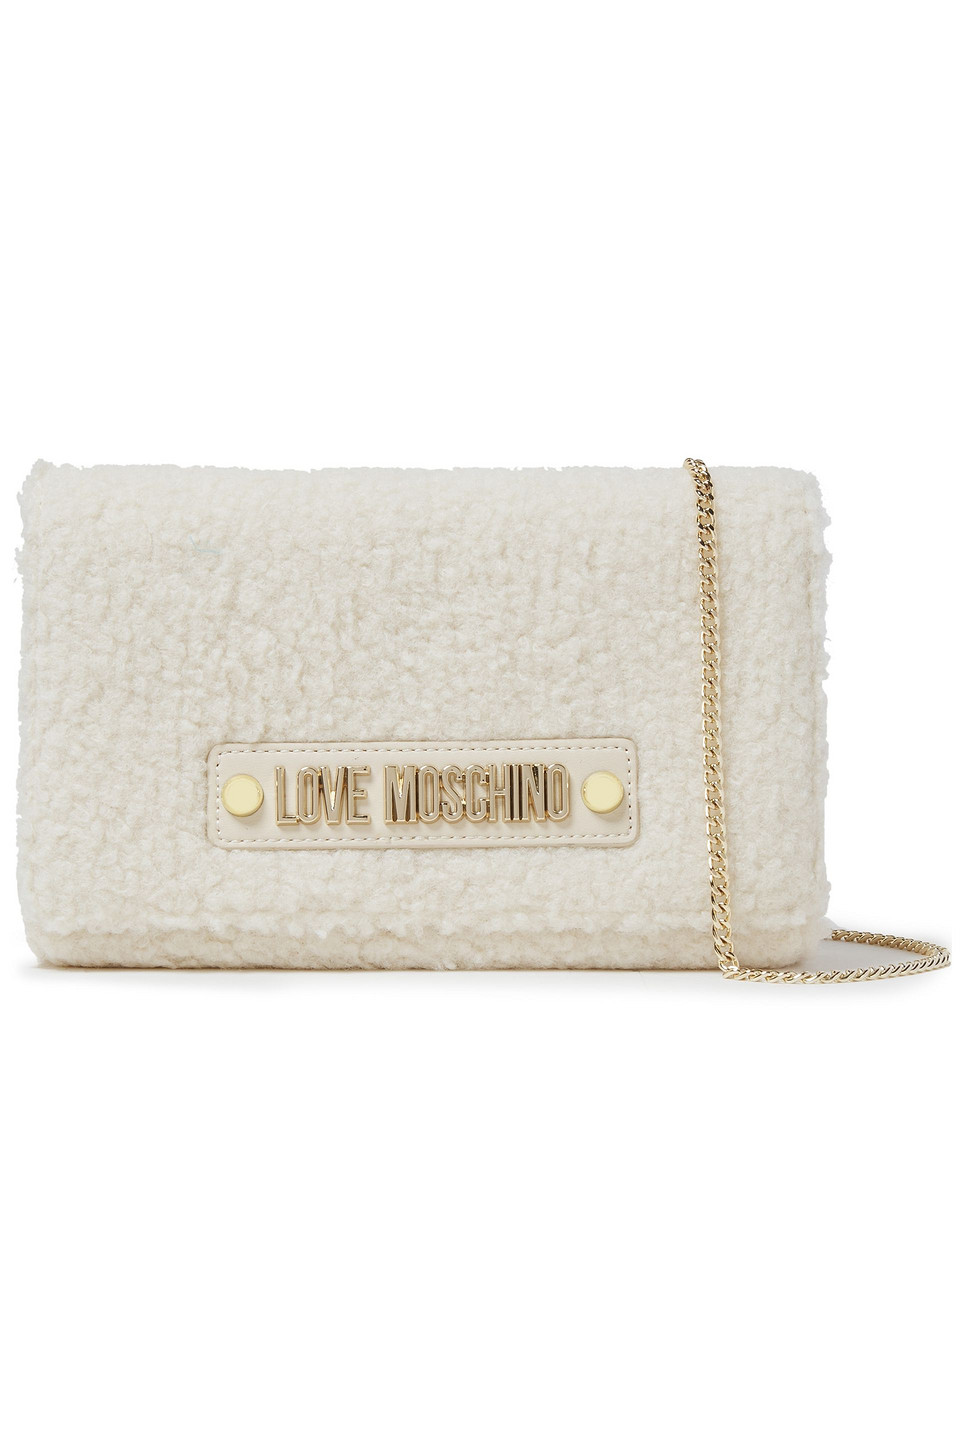 Love Moschino | Love Moschino Woman Faux Shearling Shoulder Bag Ivory | Clouty